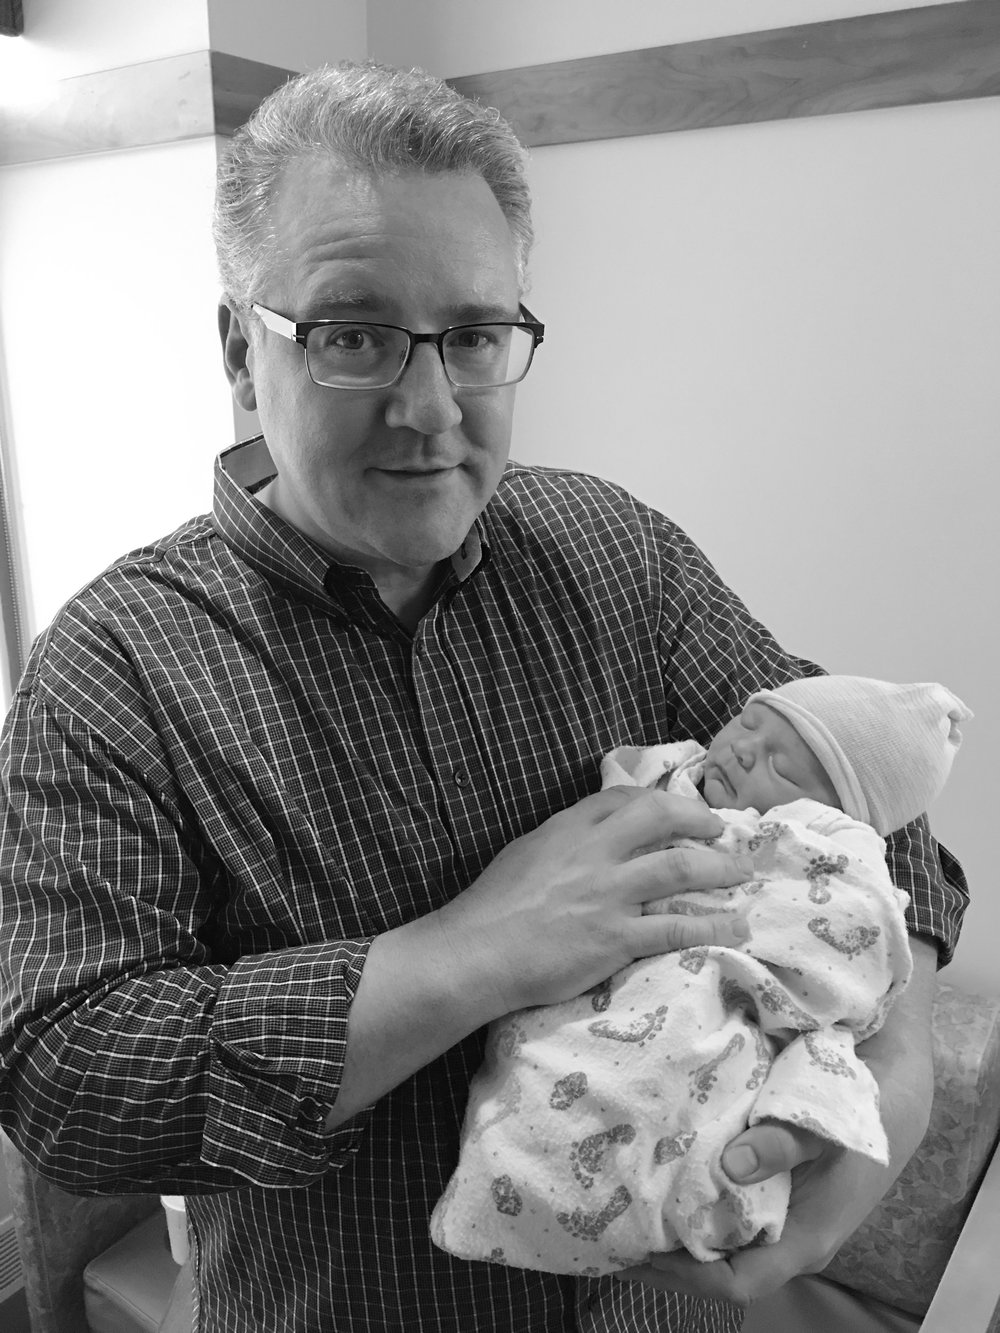 Although he still has all his hair and teeth, Brett Levitre is now a grandfather, giving Tony his second great-grandchild.